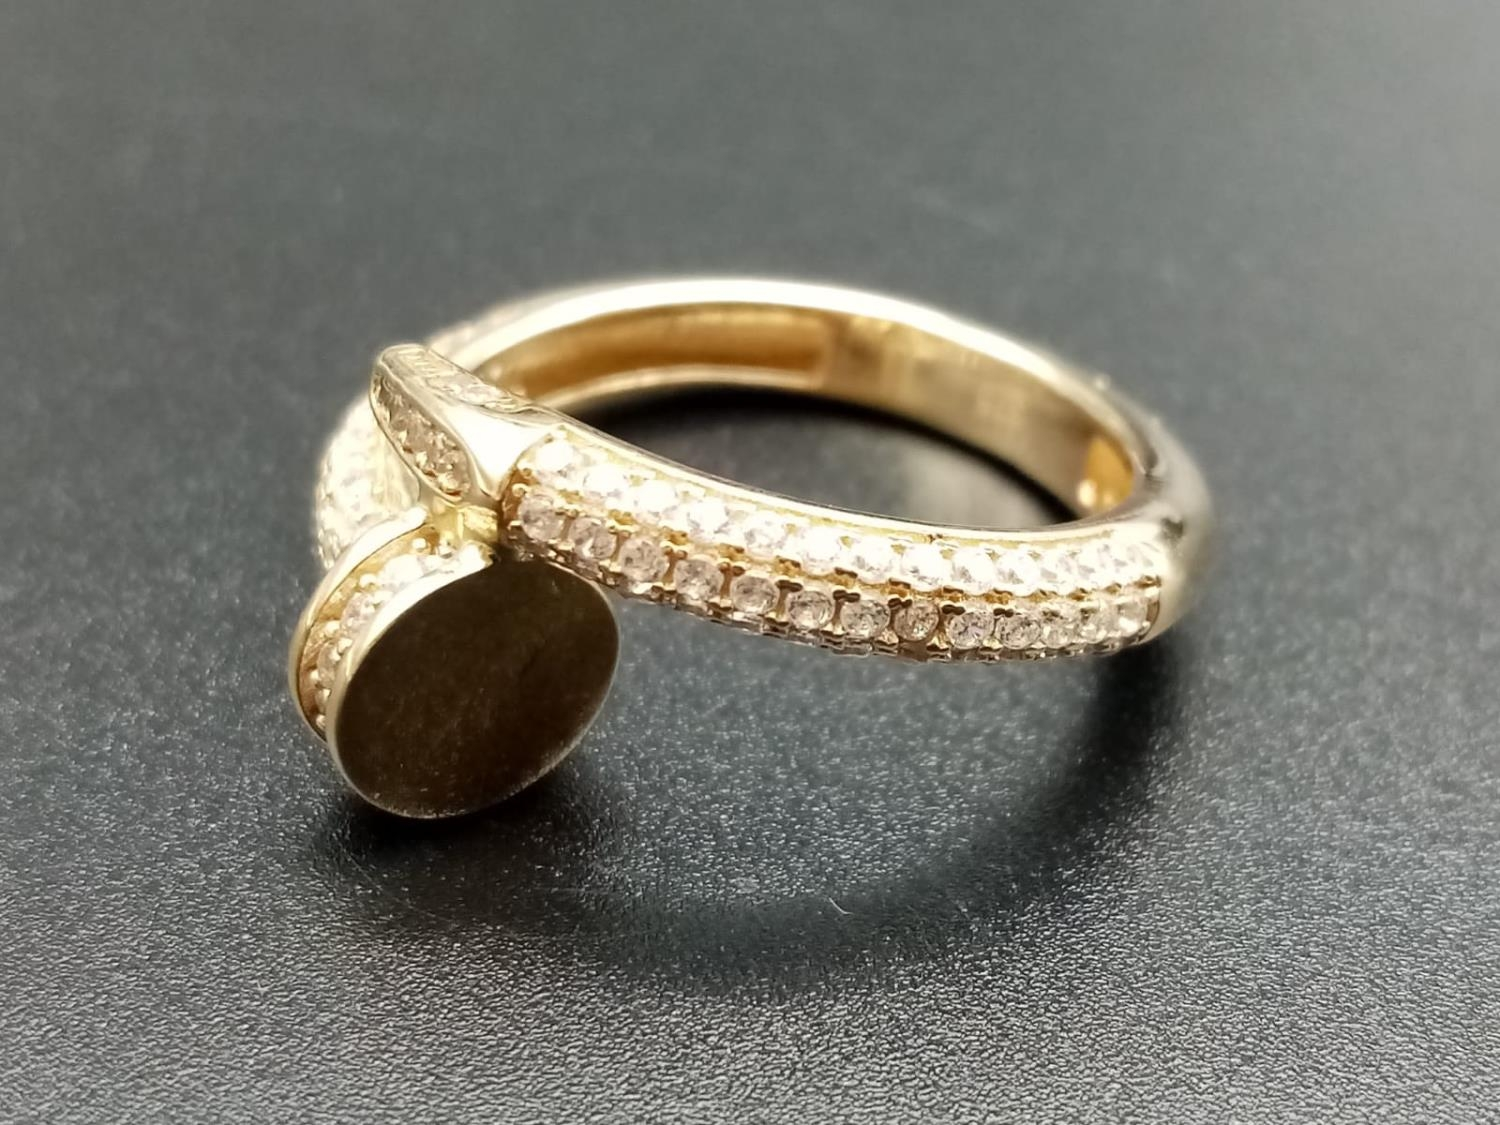 9CT YELLOW GOLD CZ SET CARTIER STYLE RING, WEIGHT 3.9G SIZE P1/2 - Image 3 of 3